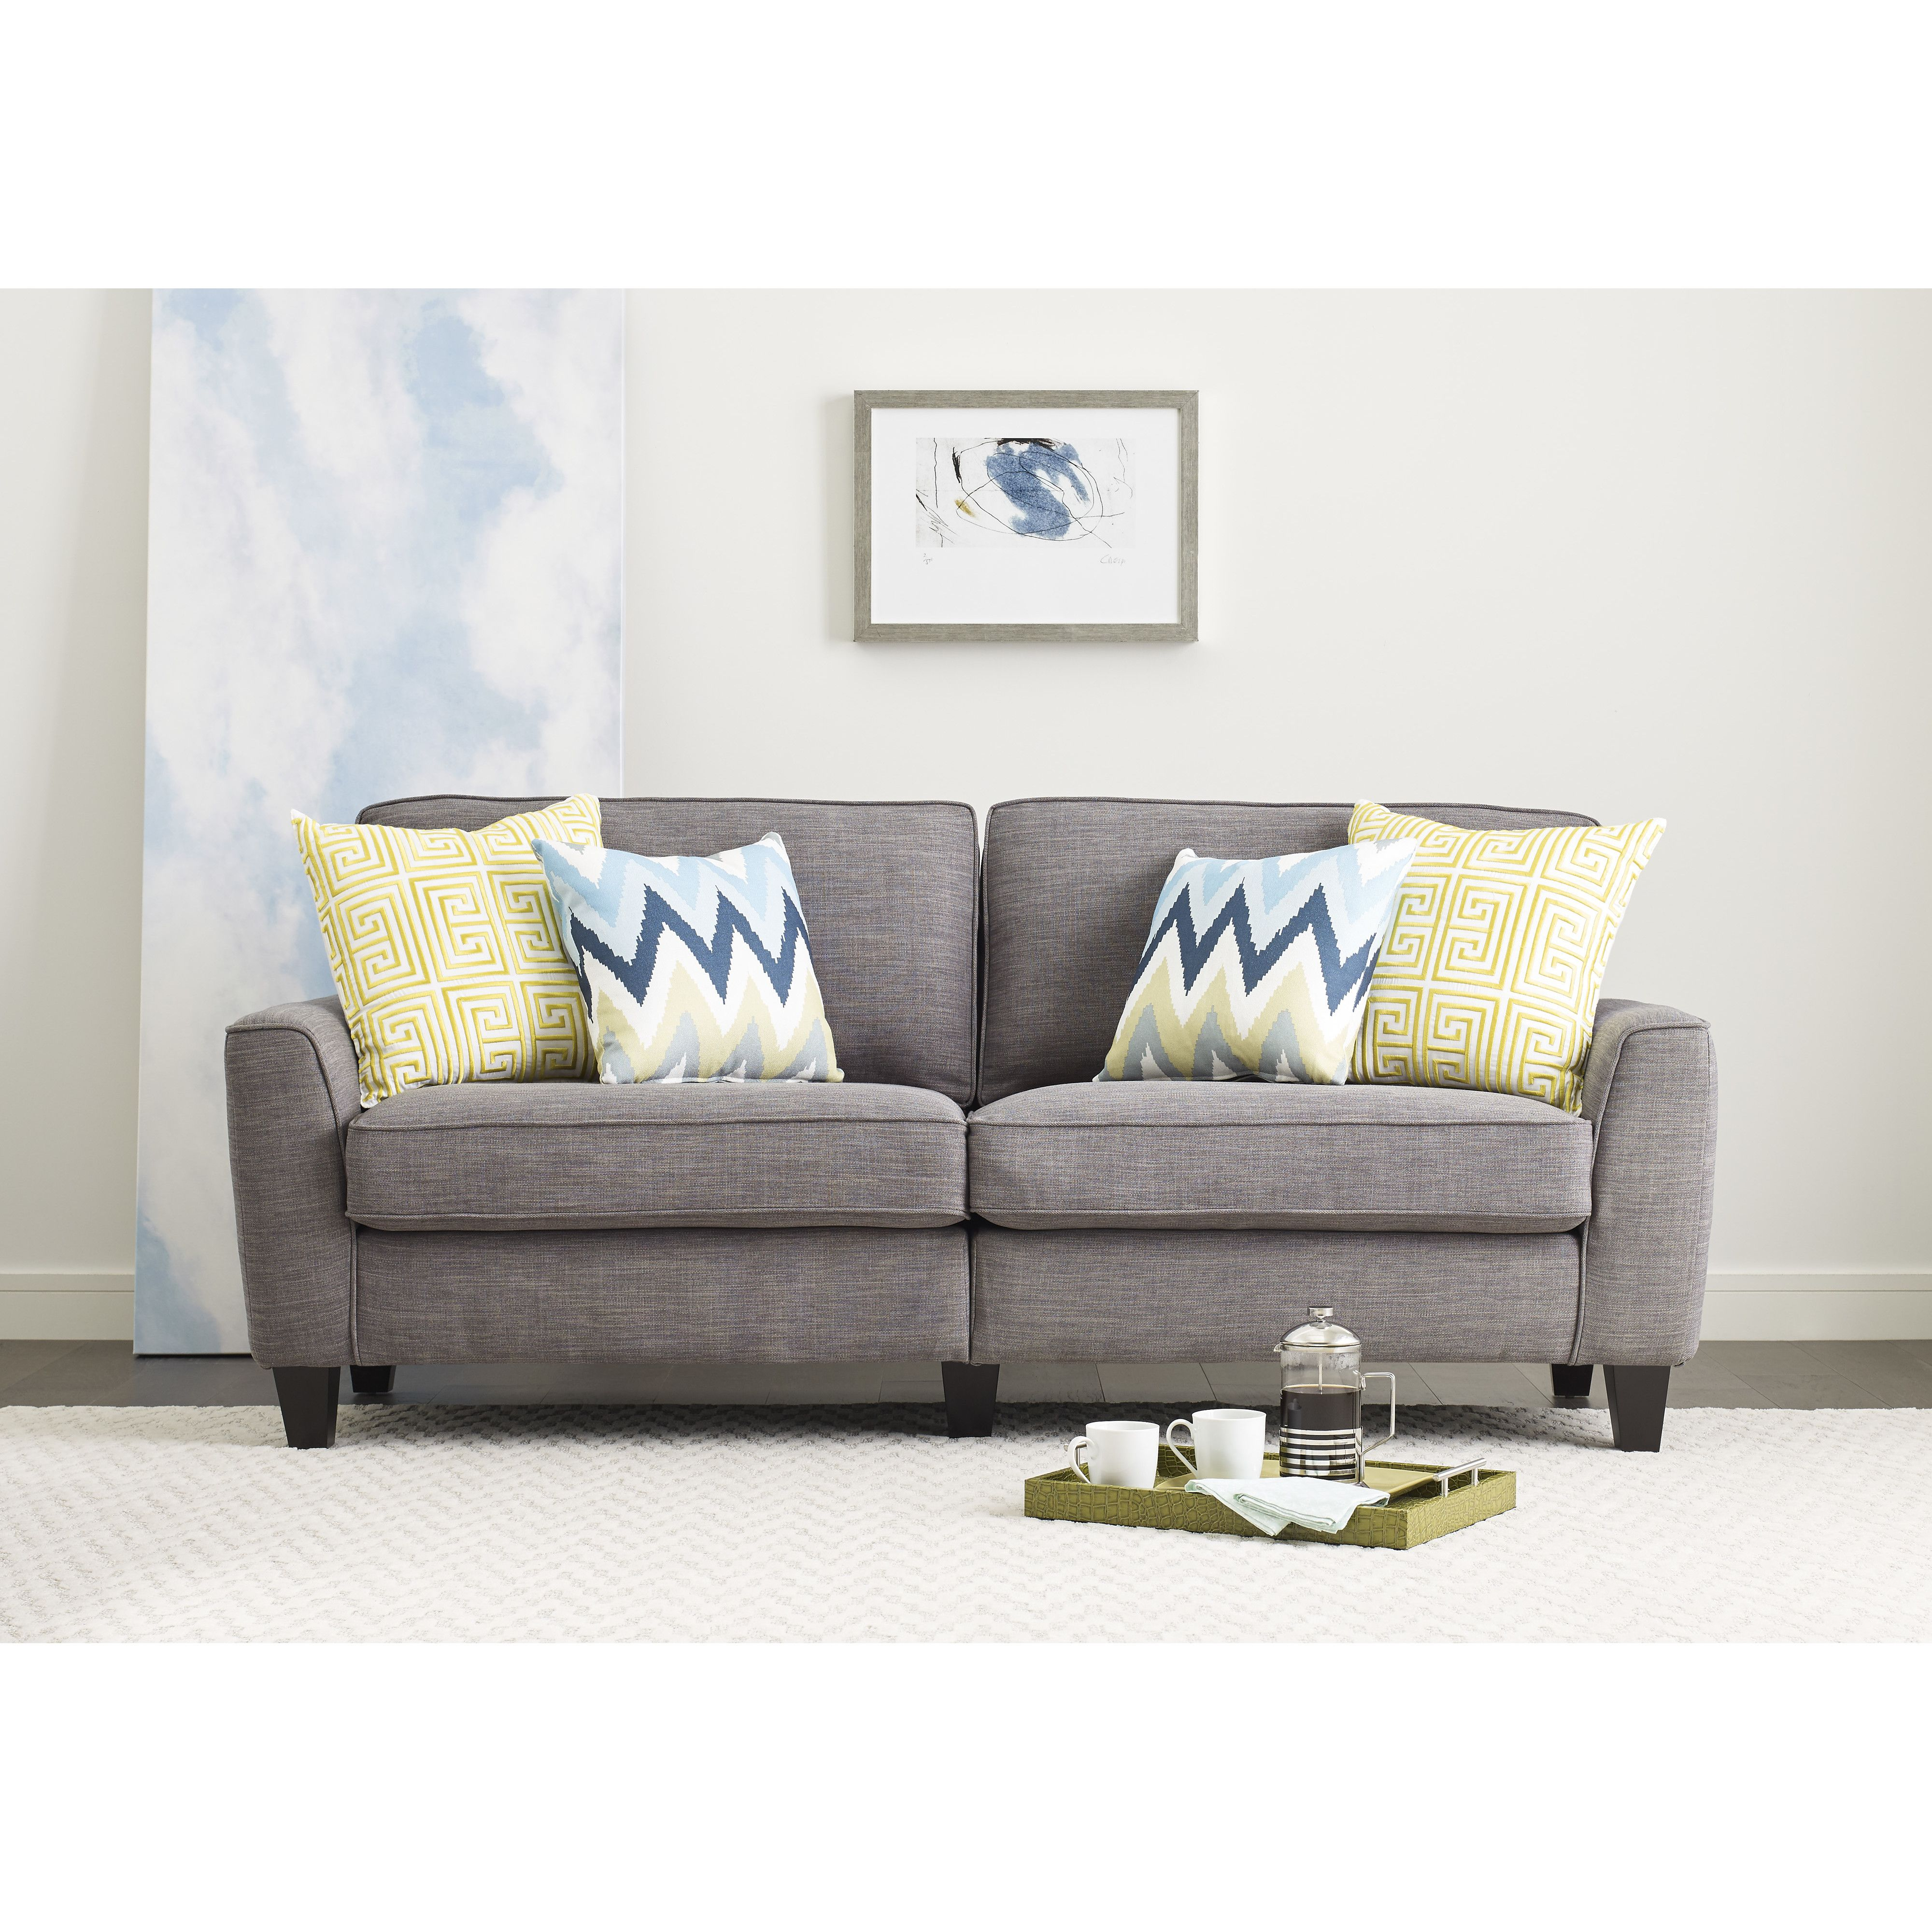 You Ll Love The Astoria 73 Sofa At Wayfair Great Deals On All Furniture Products With Fre Cheap Living Room Sets White Furniture Living Room Living Room Sets